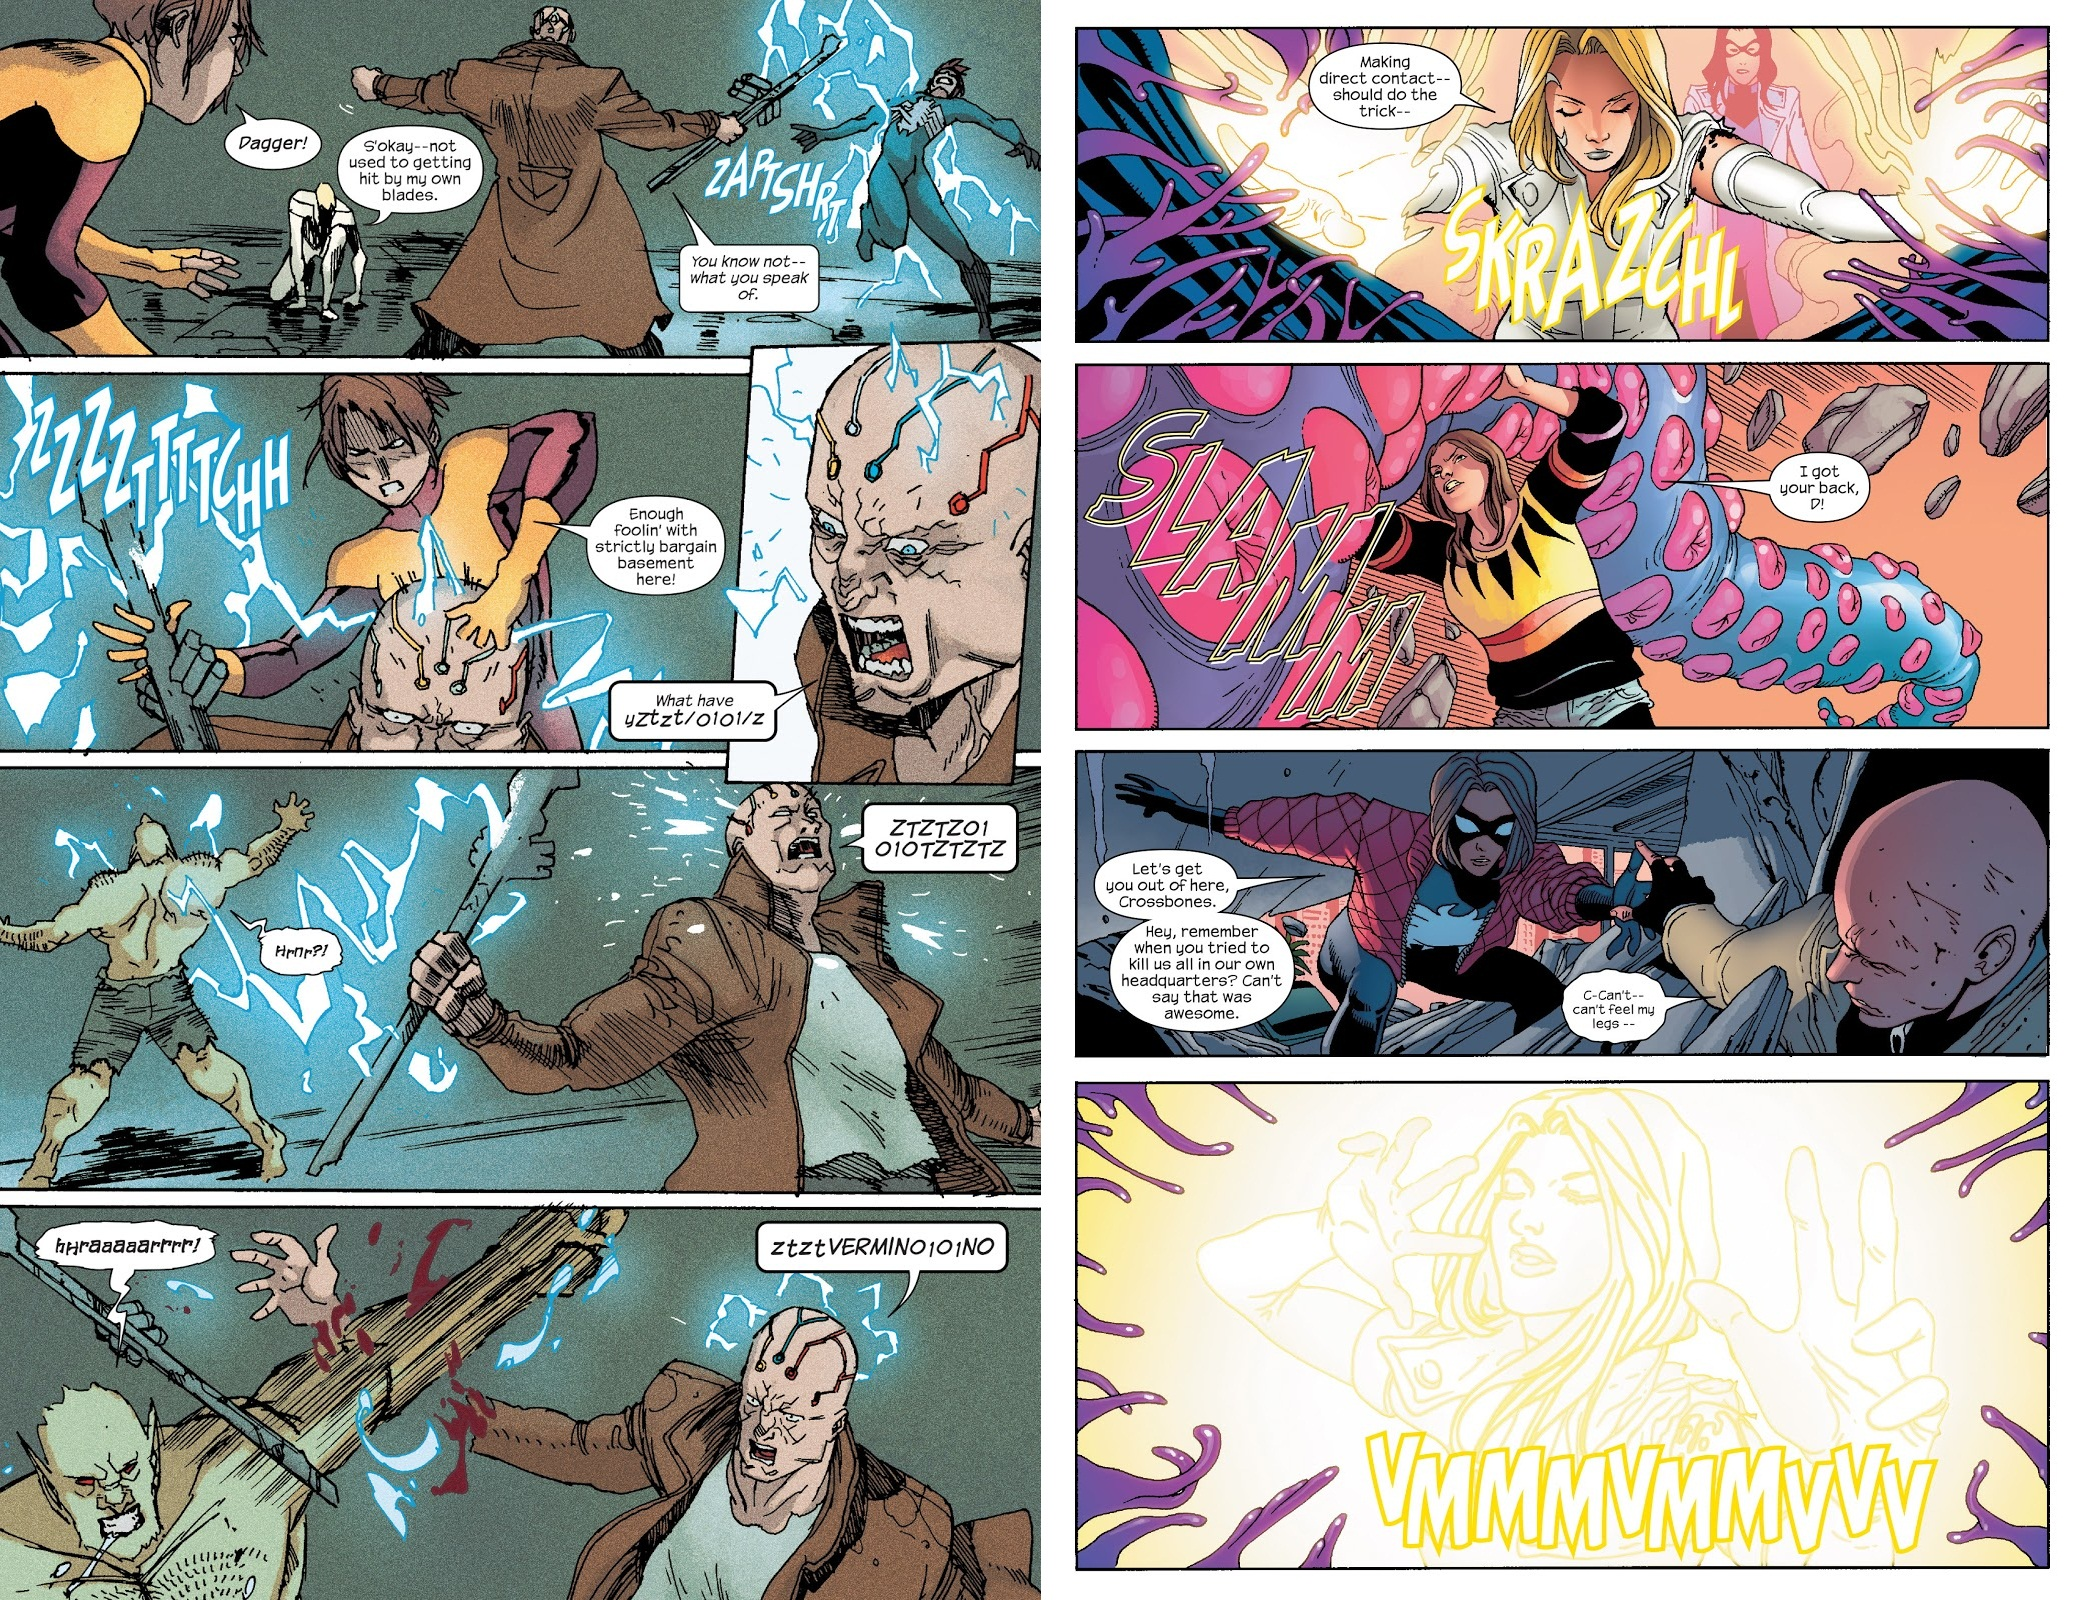 All New Ultimates No Gods No Masters review